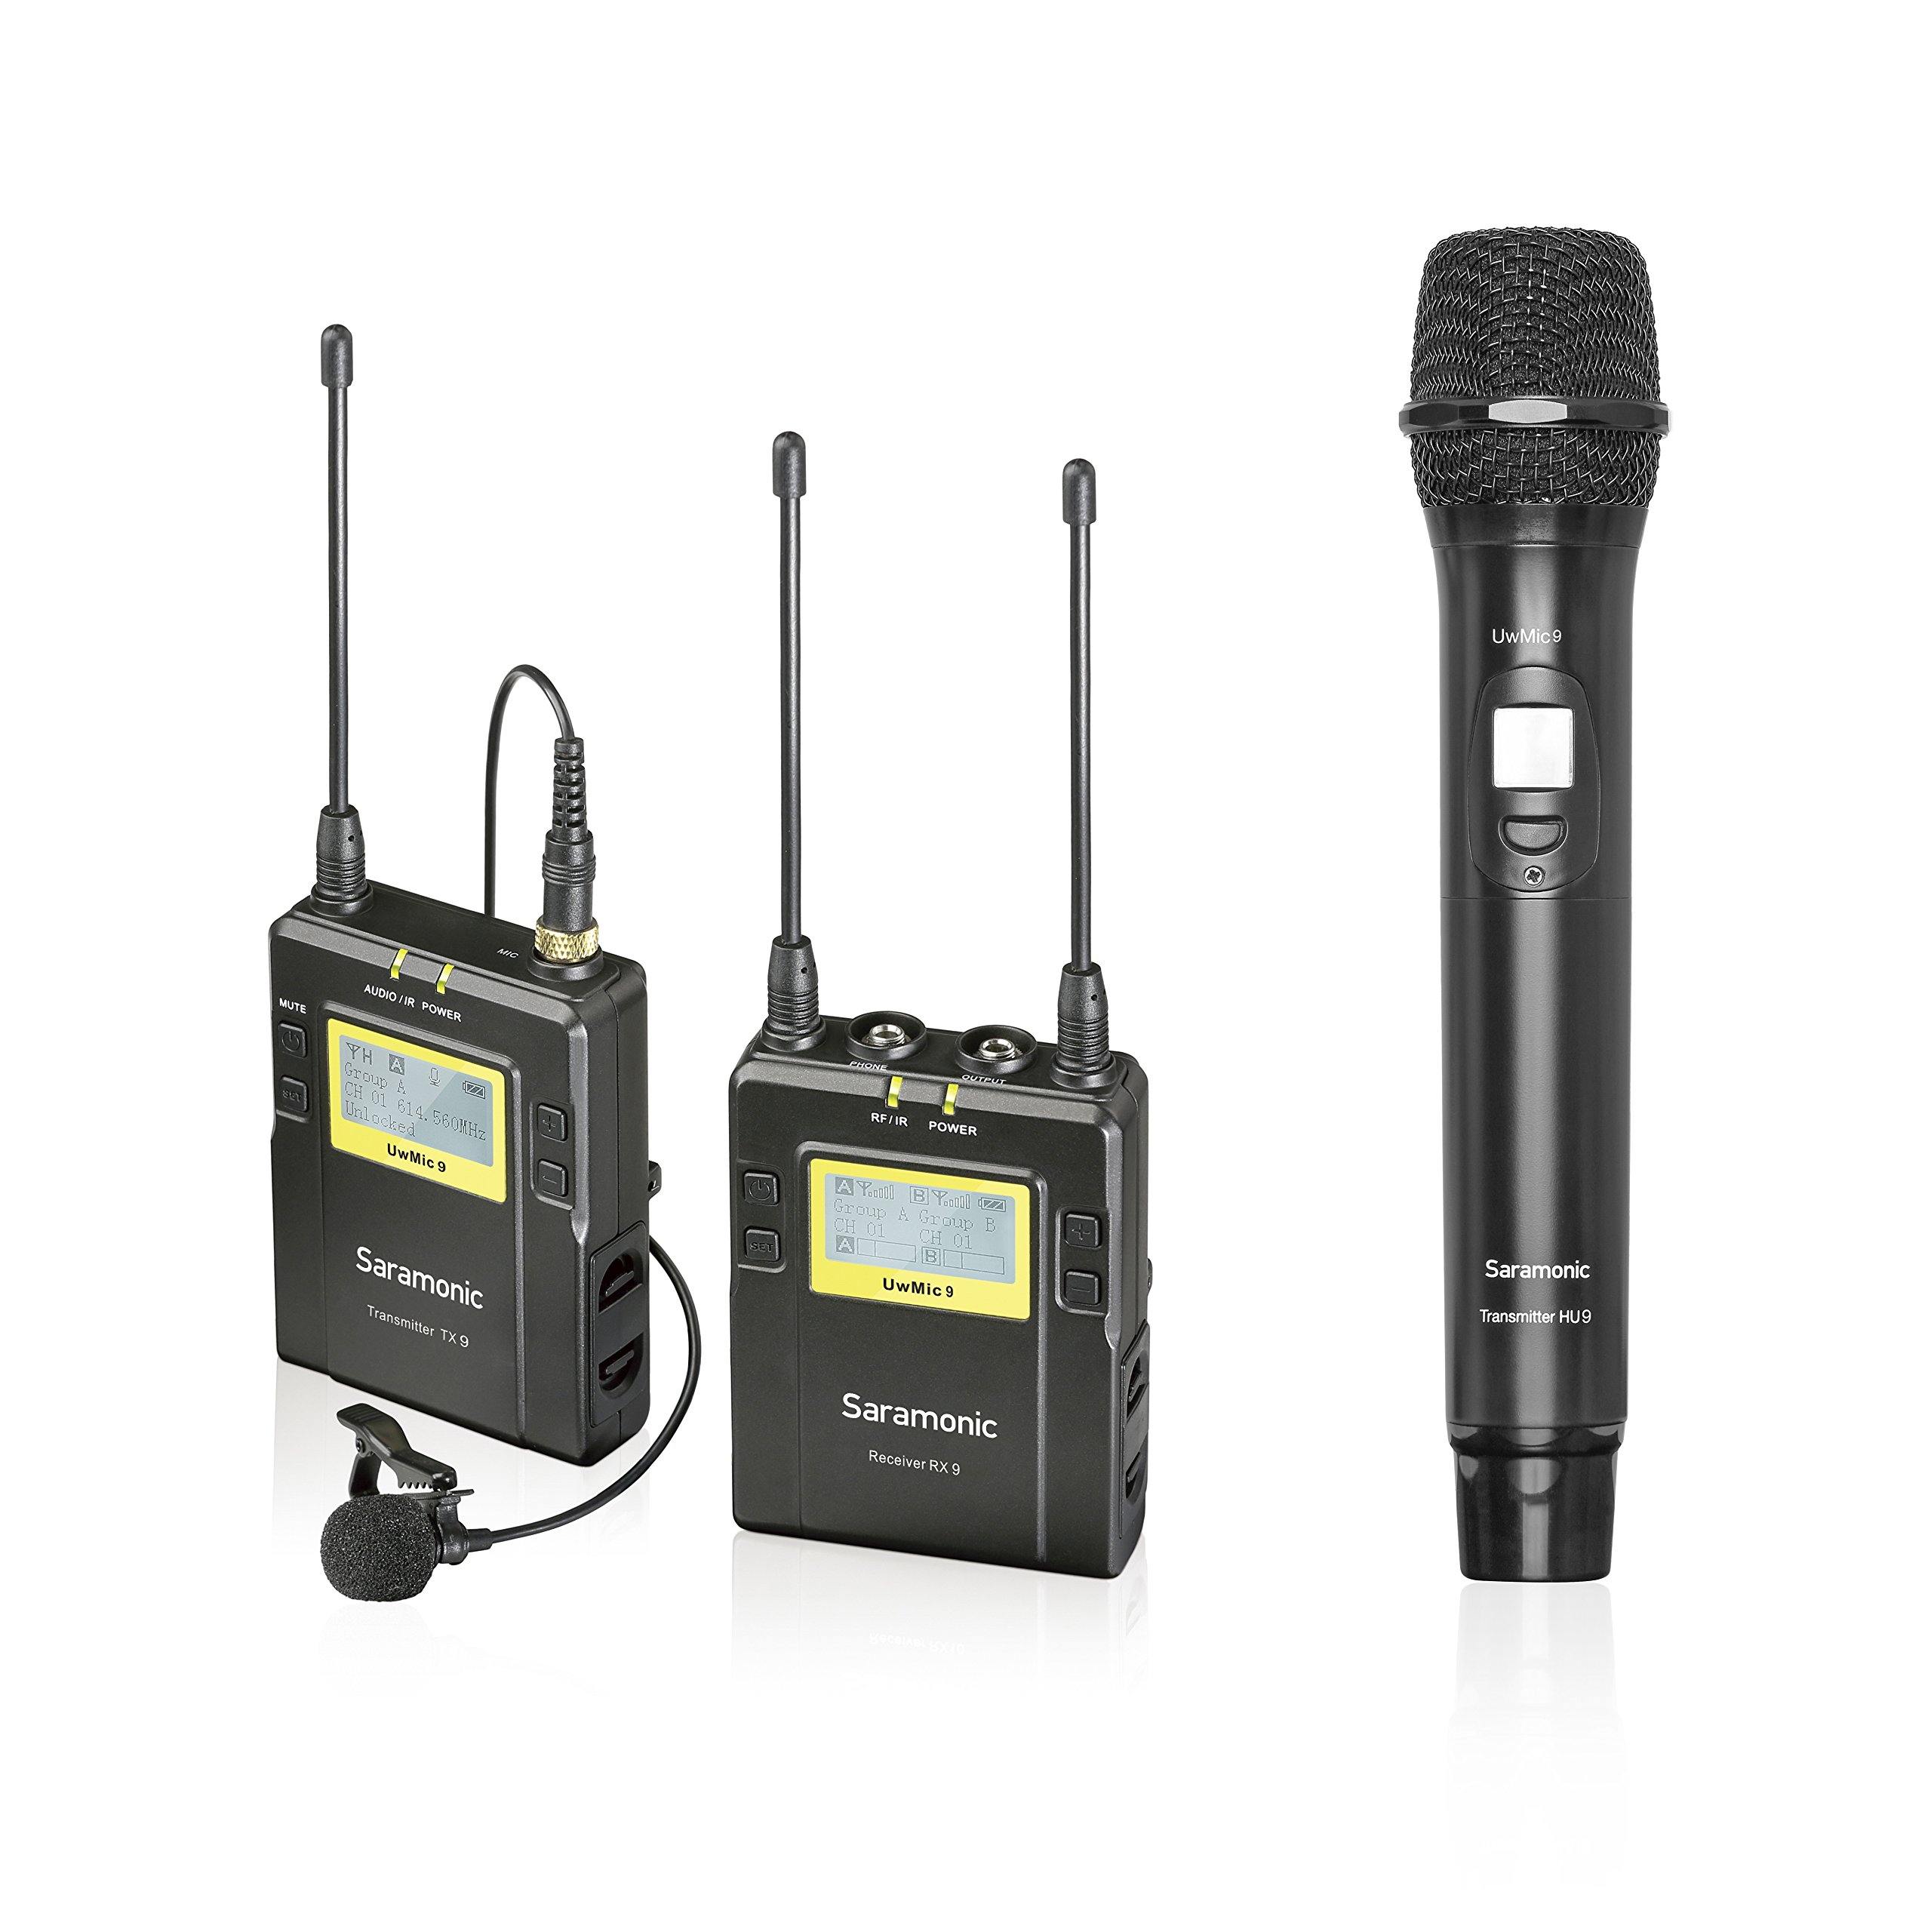 Saramonic UWMIC9 UHF Wireless Lavalier + Handheld Microphone System with Bodypack Transmitter + Lav Mic, Handheld Mic with Transmitter, Receiver, Shoe Mount, XLR/3.5mm Outputs by Saramonic